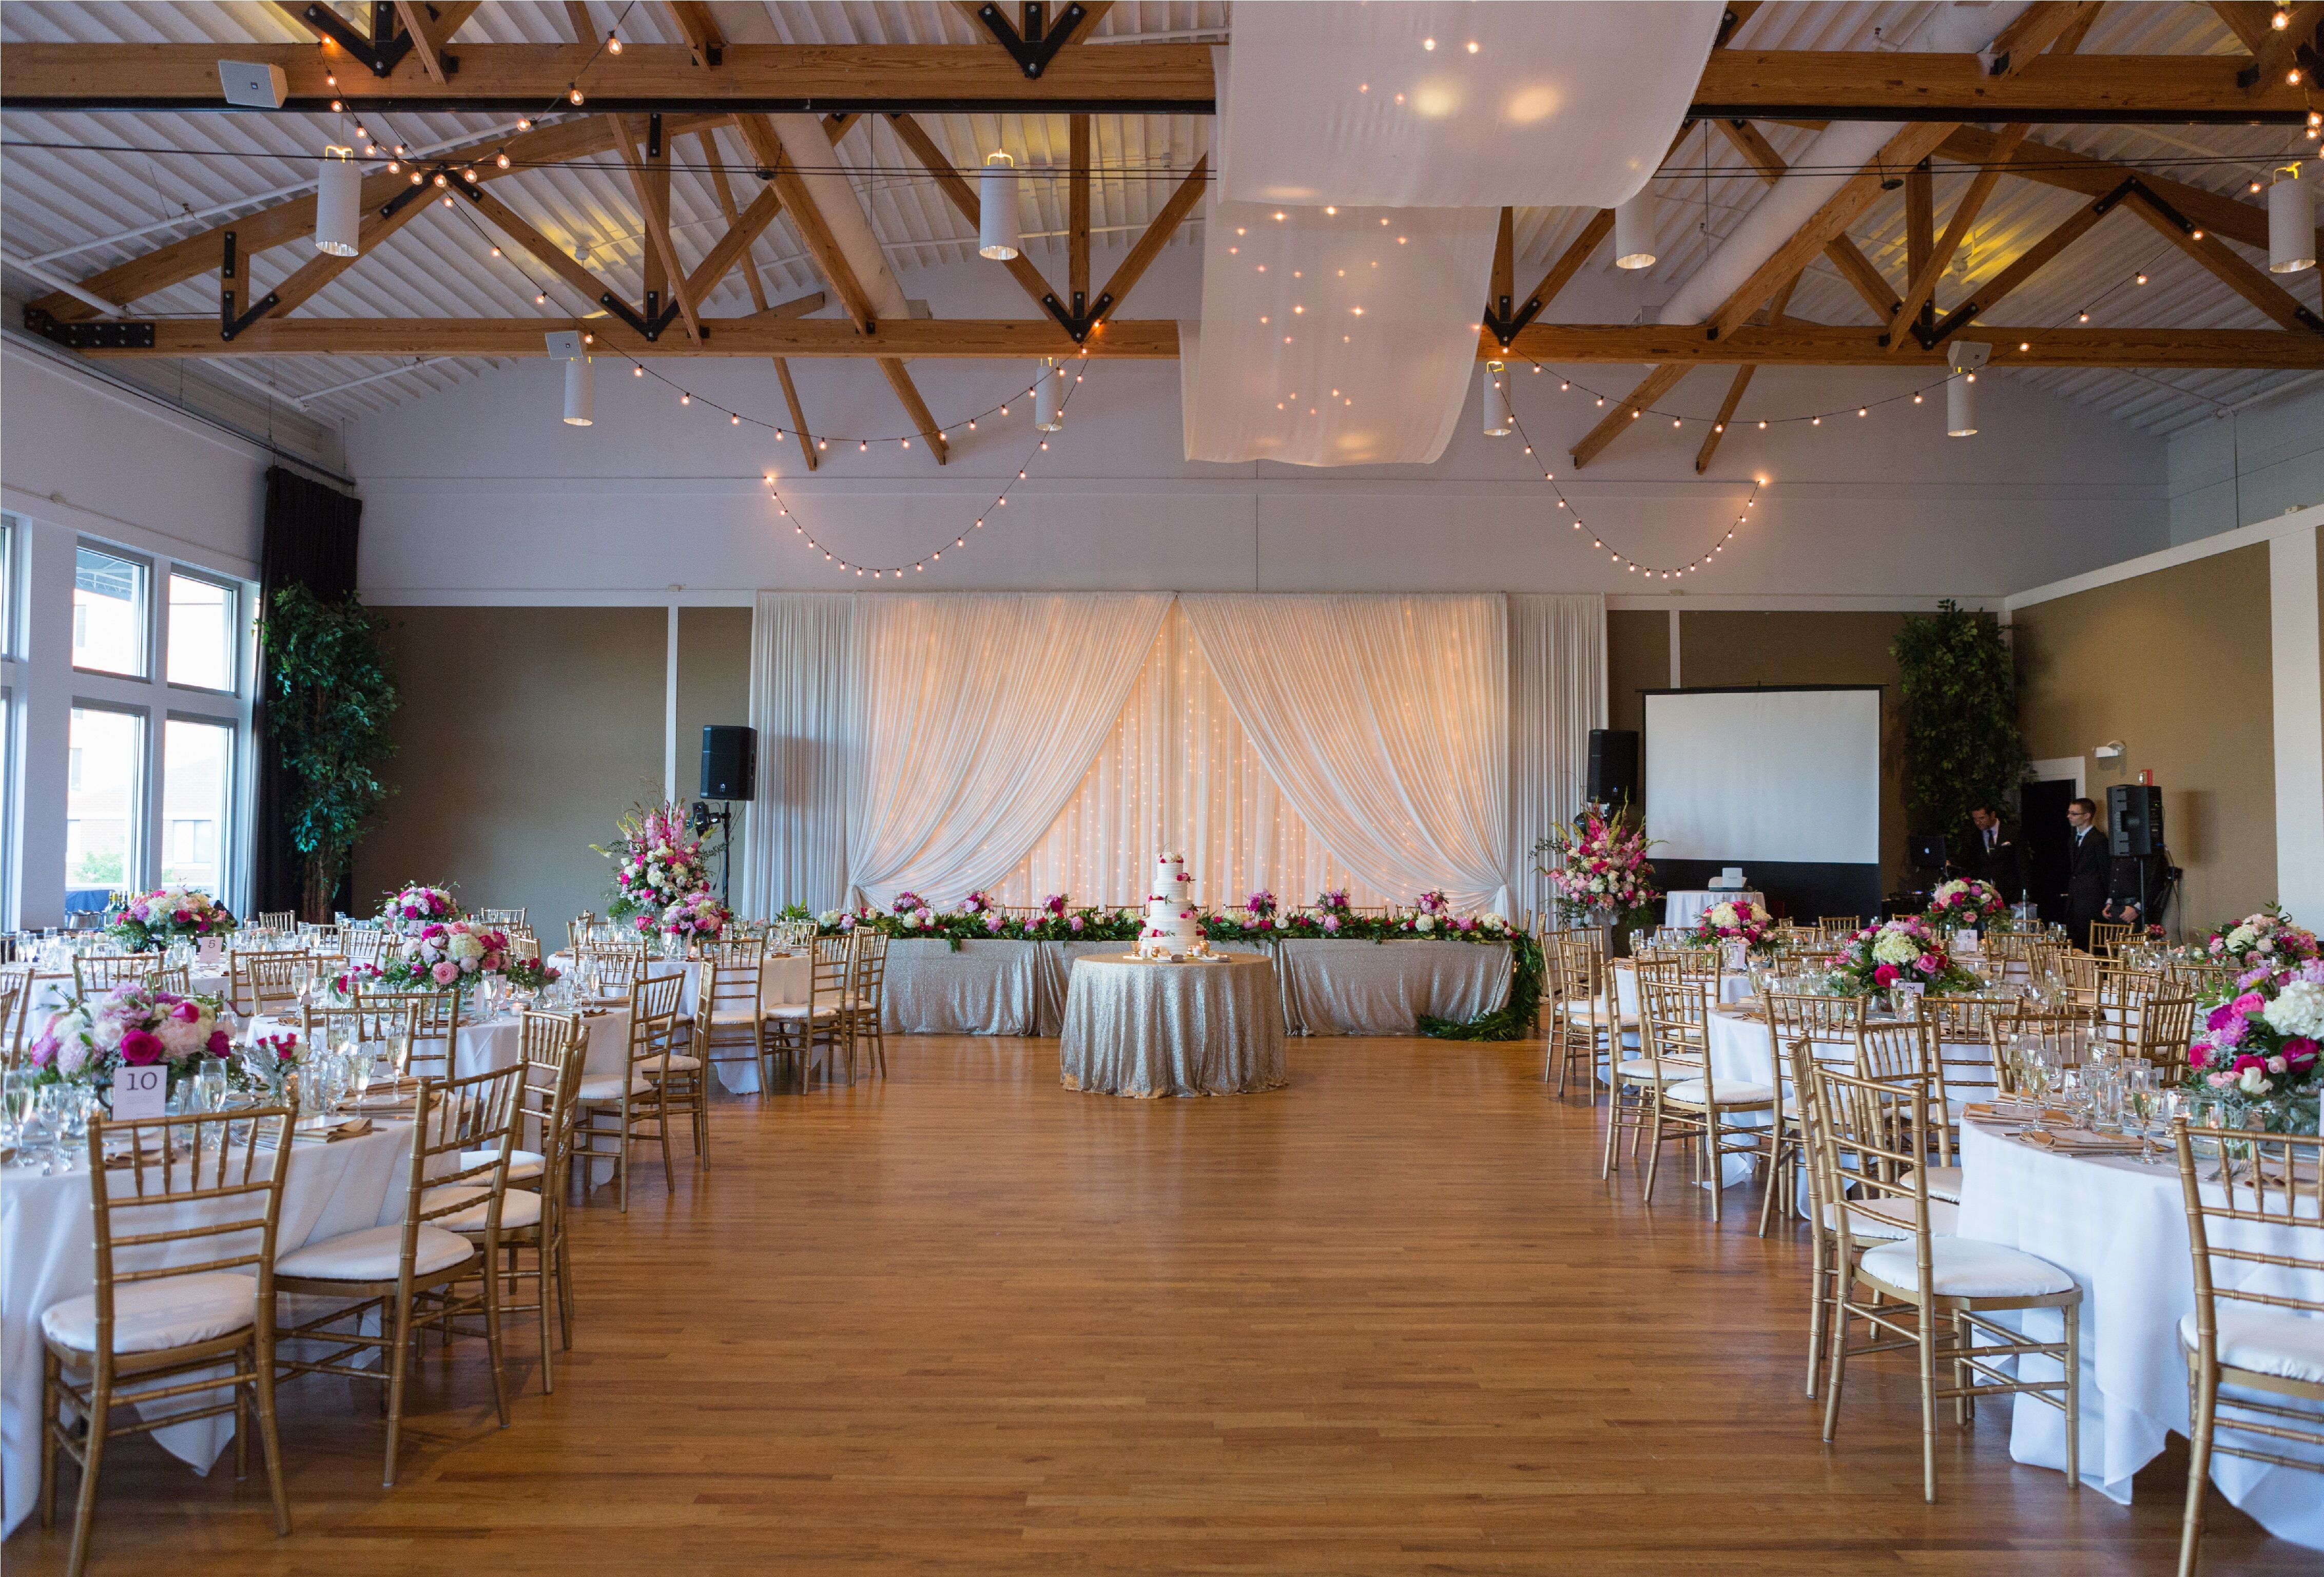 metropolis ballroom of arlington heights reception 19657 | 0bf55d67 8278 4ec9 8846 65000da9999c